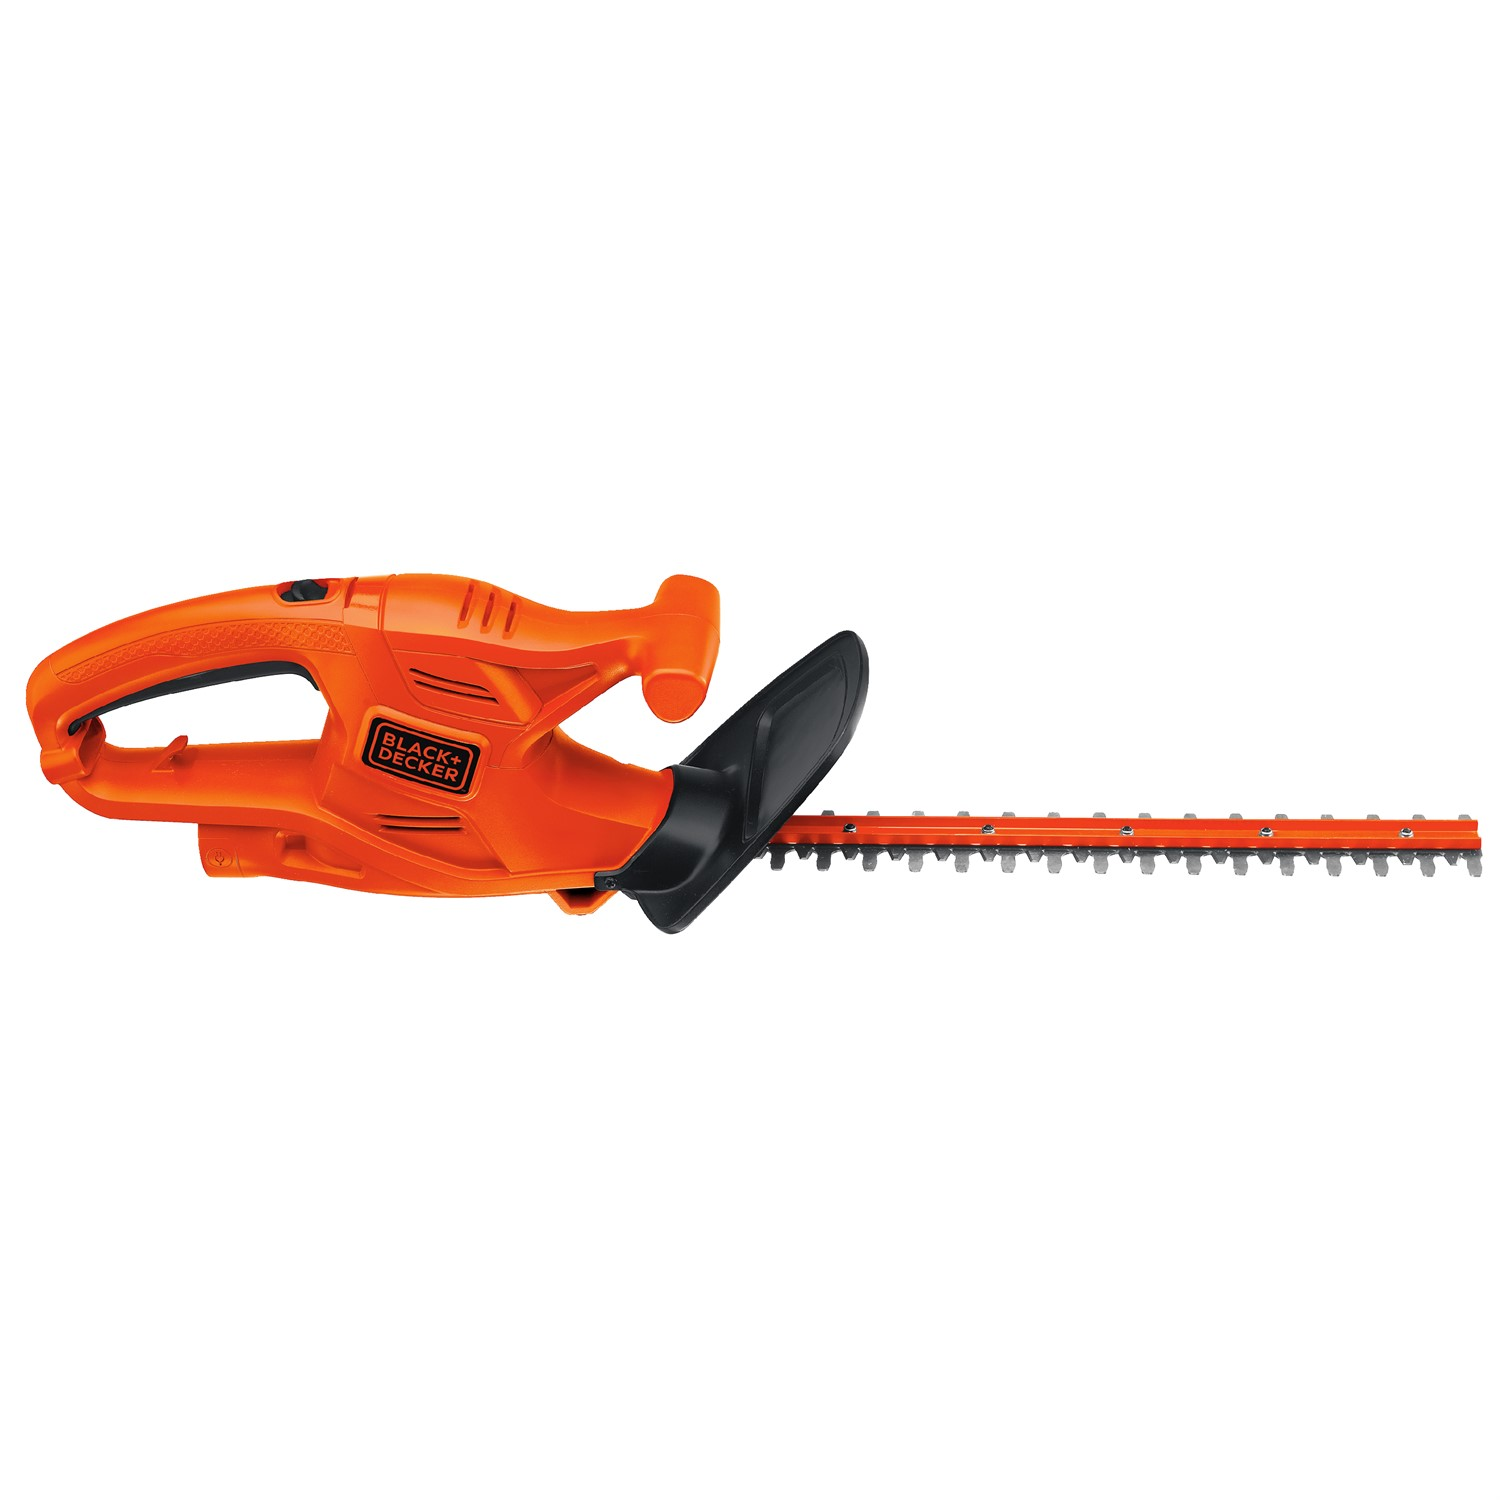 "Black & Decker TR116 16"" 3 Amp Electric Hedge Trimmer by Stanley Black & Decker"